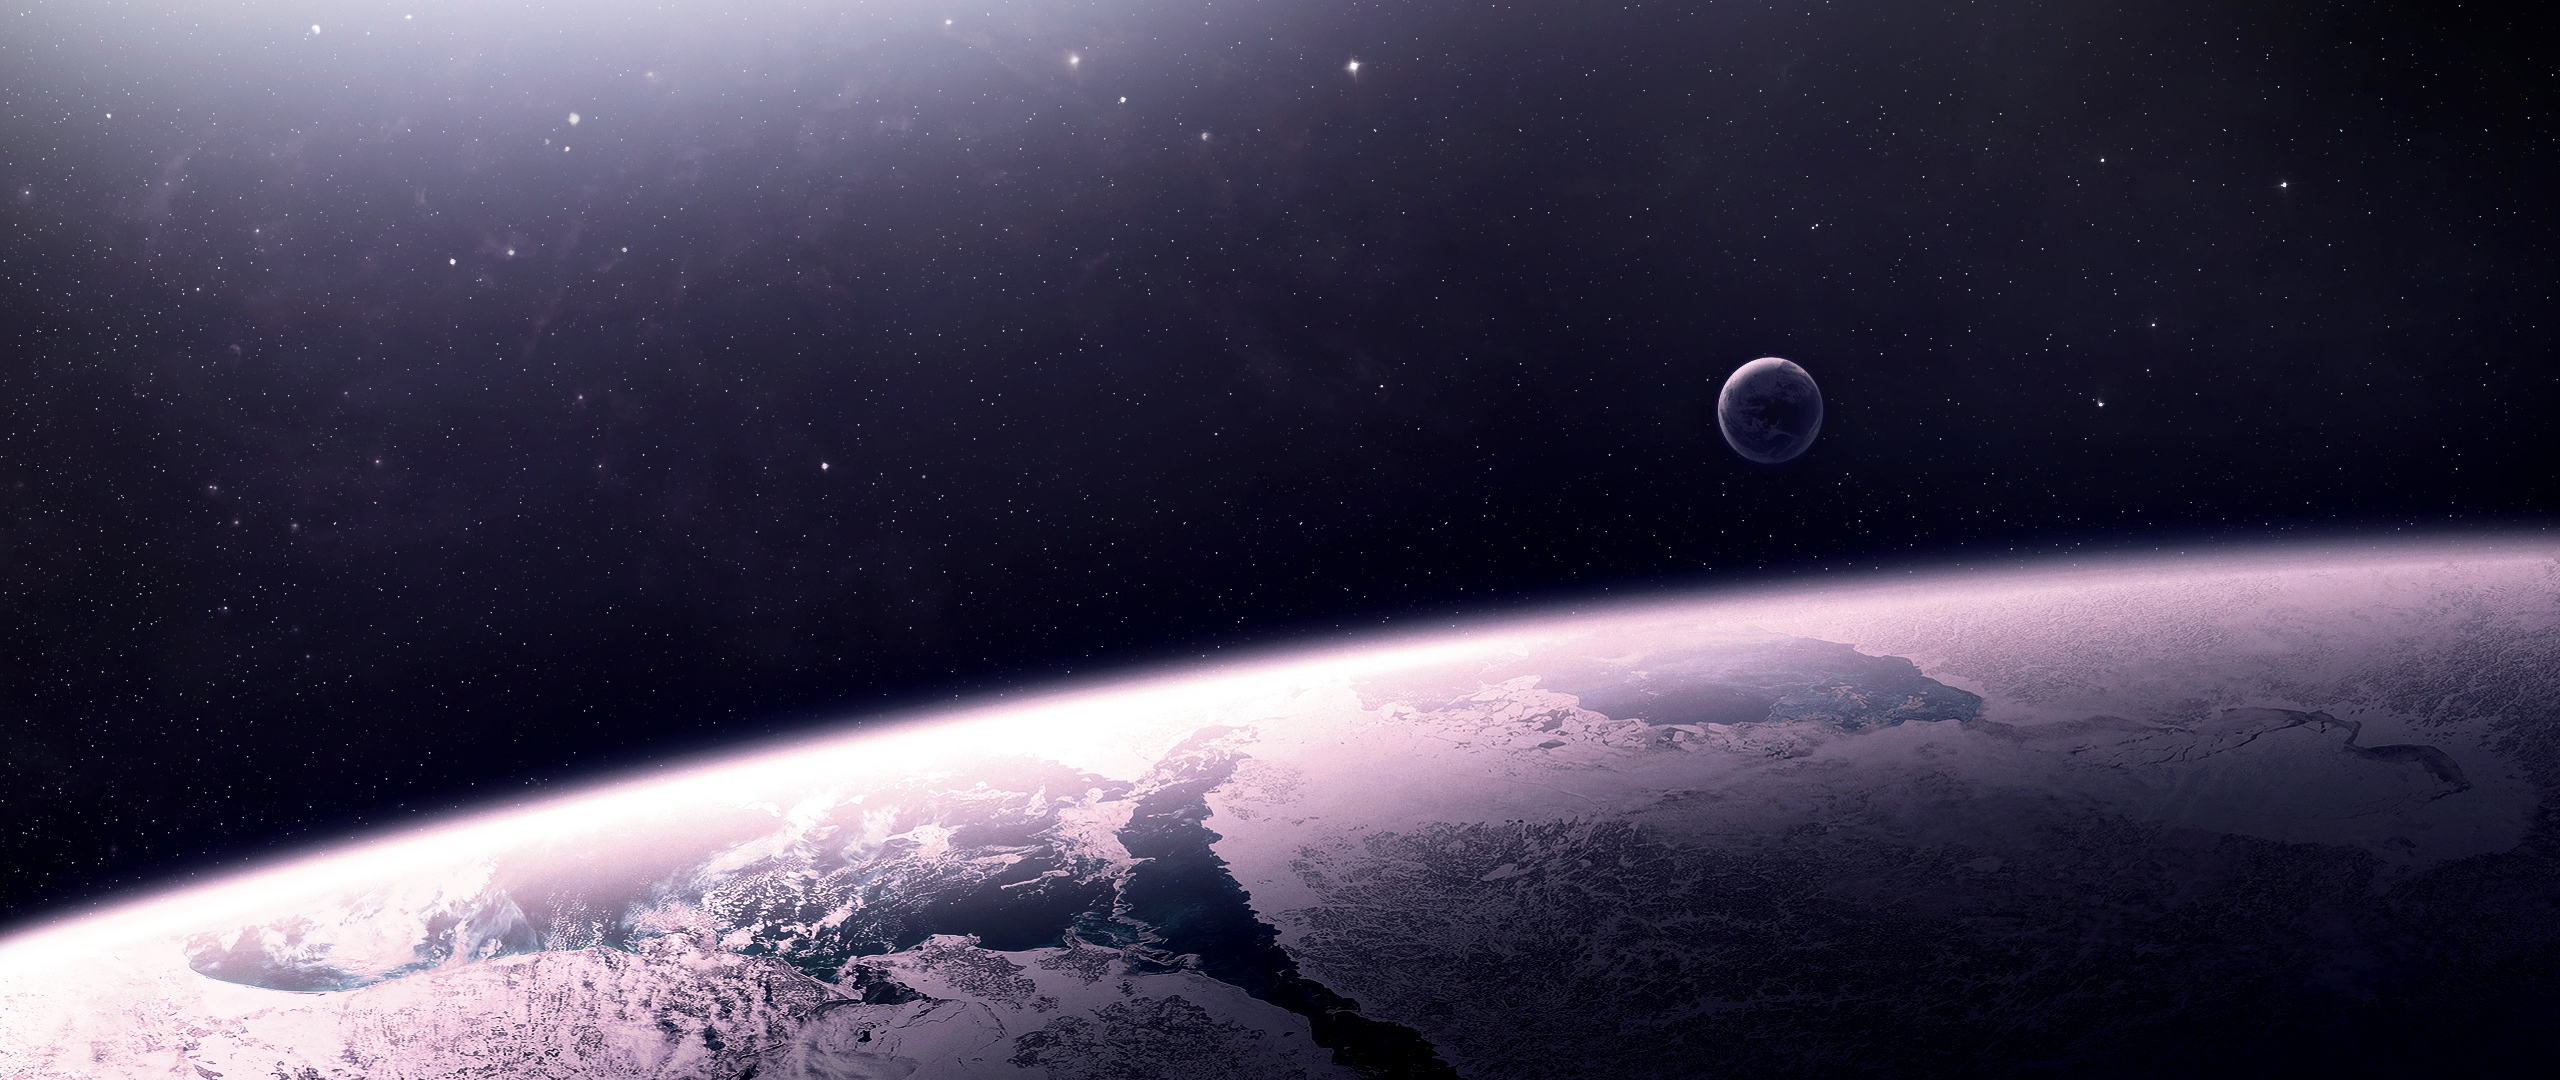 Download Wallpaper 2560x1080 star relief planet space 2560x1080 21 2560x1080